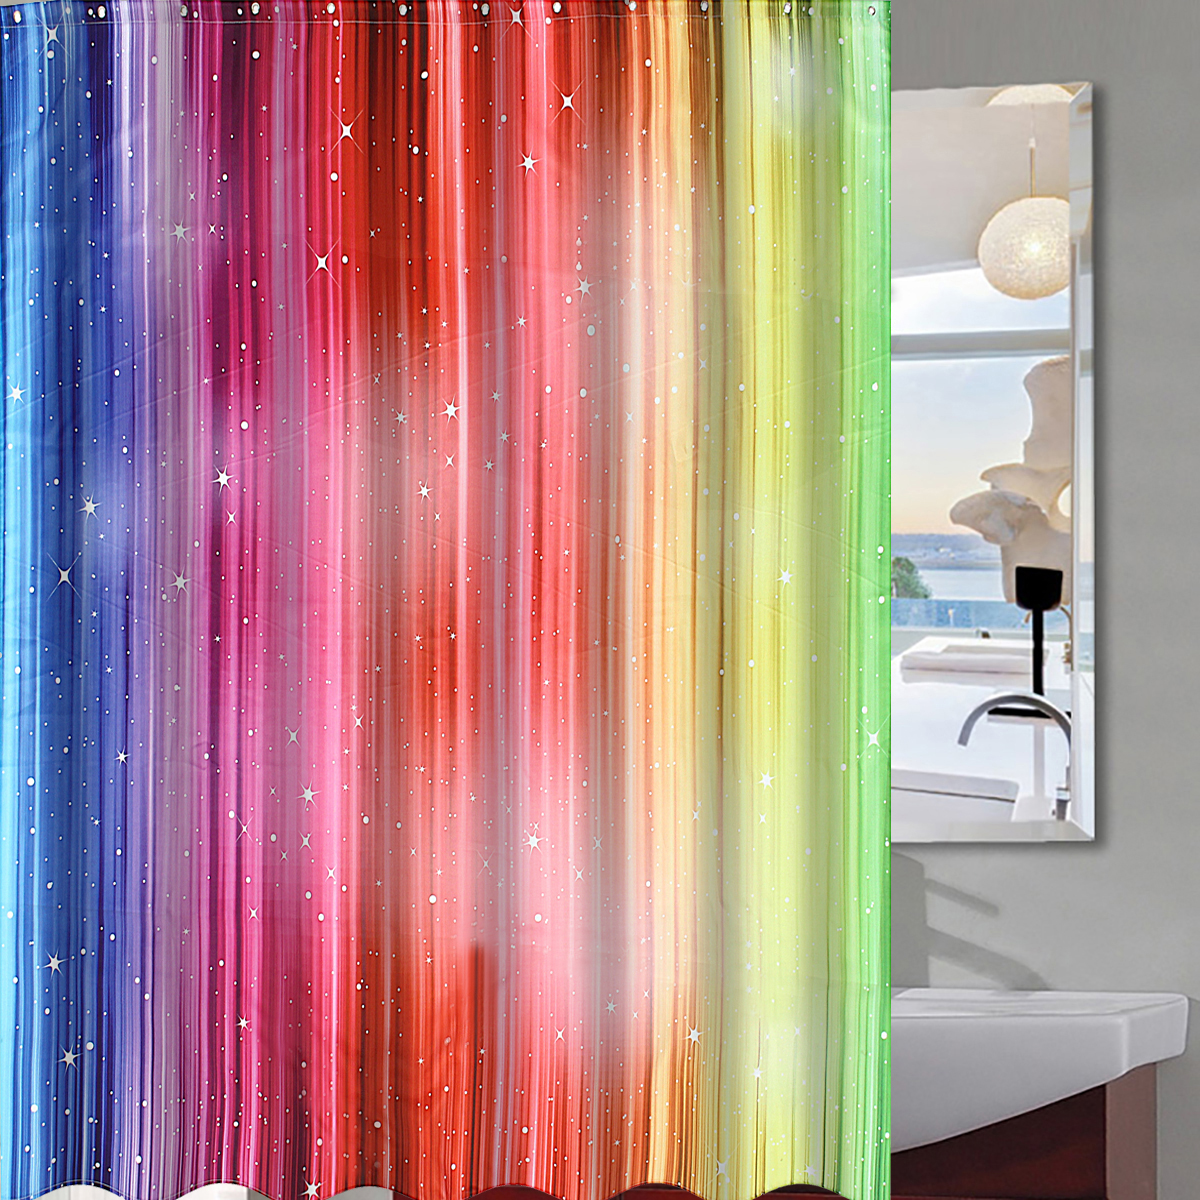 180cm Rainbow Color Gradient Waterproof Fabric Shower Curtain Polyester 12 Hooks